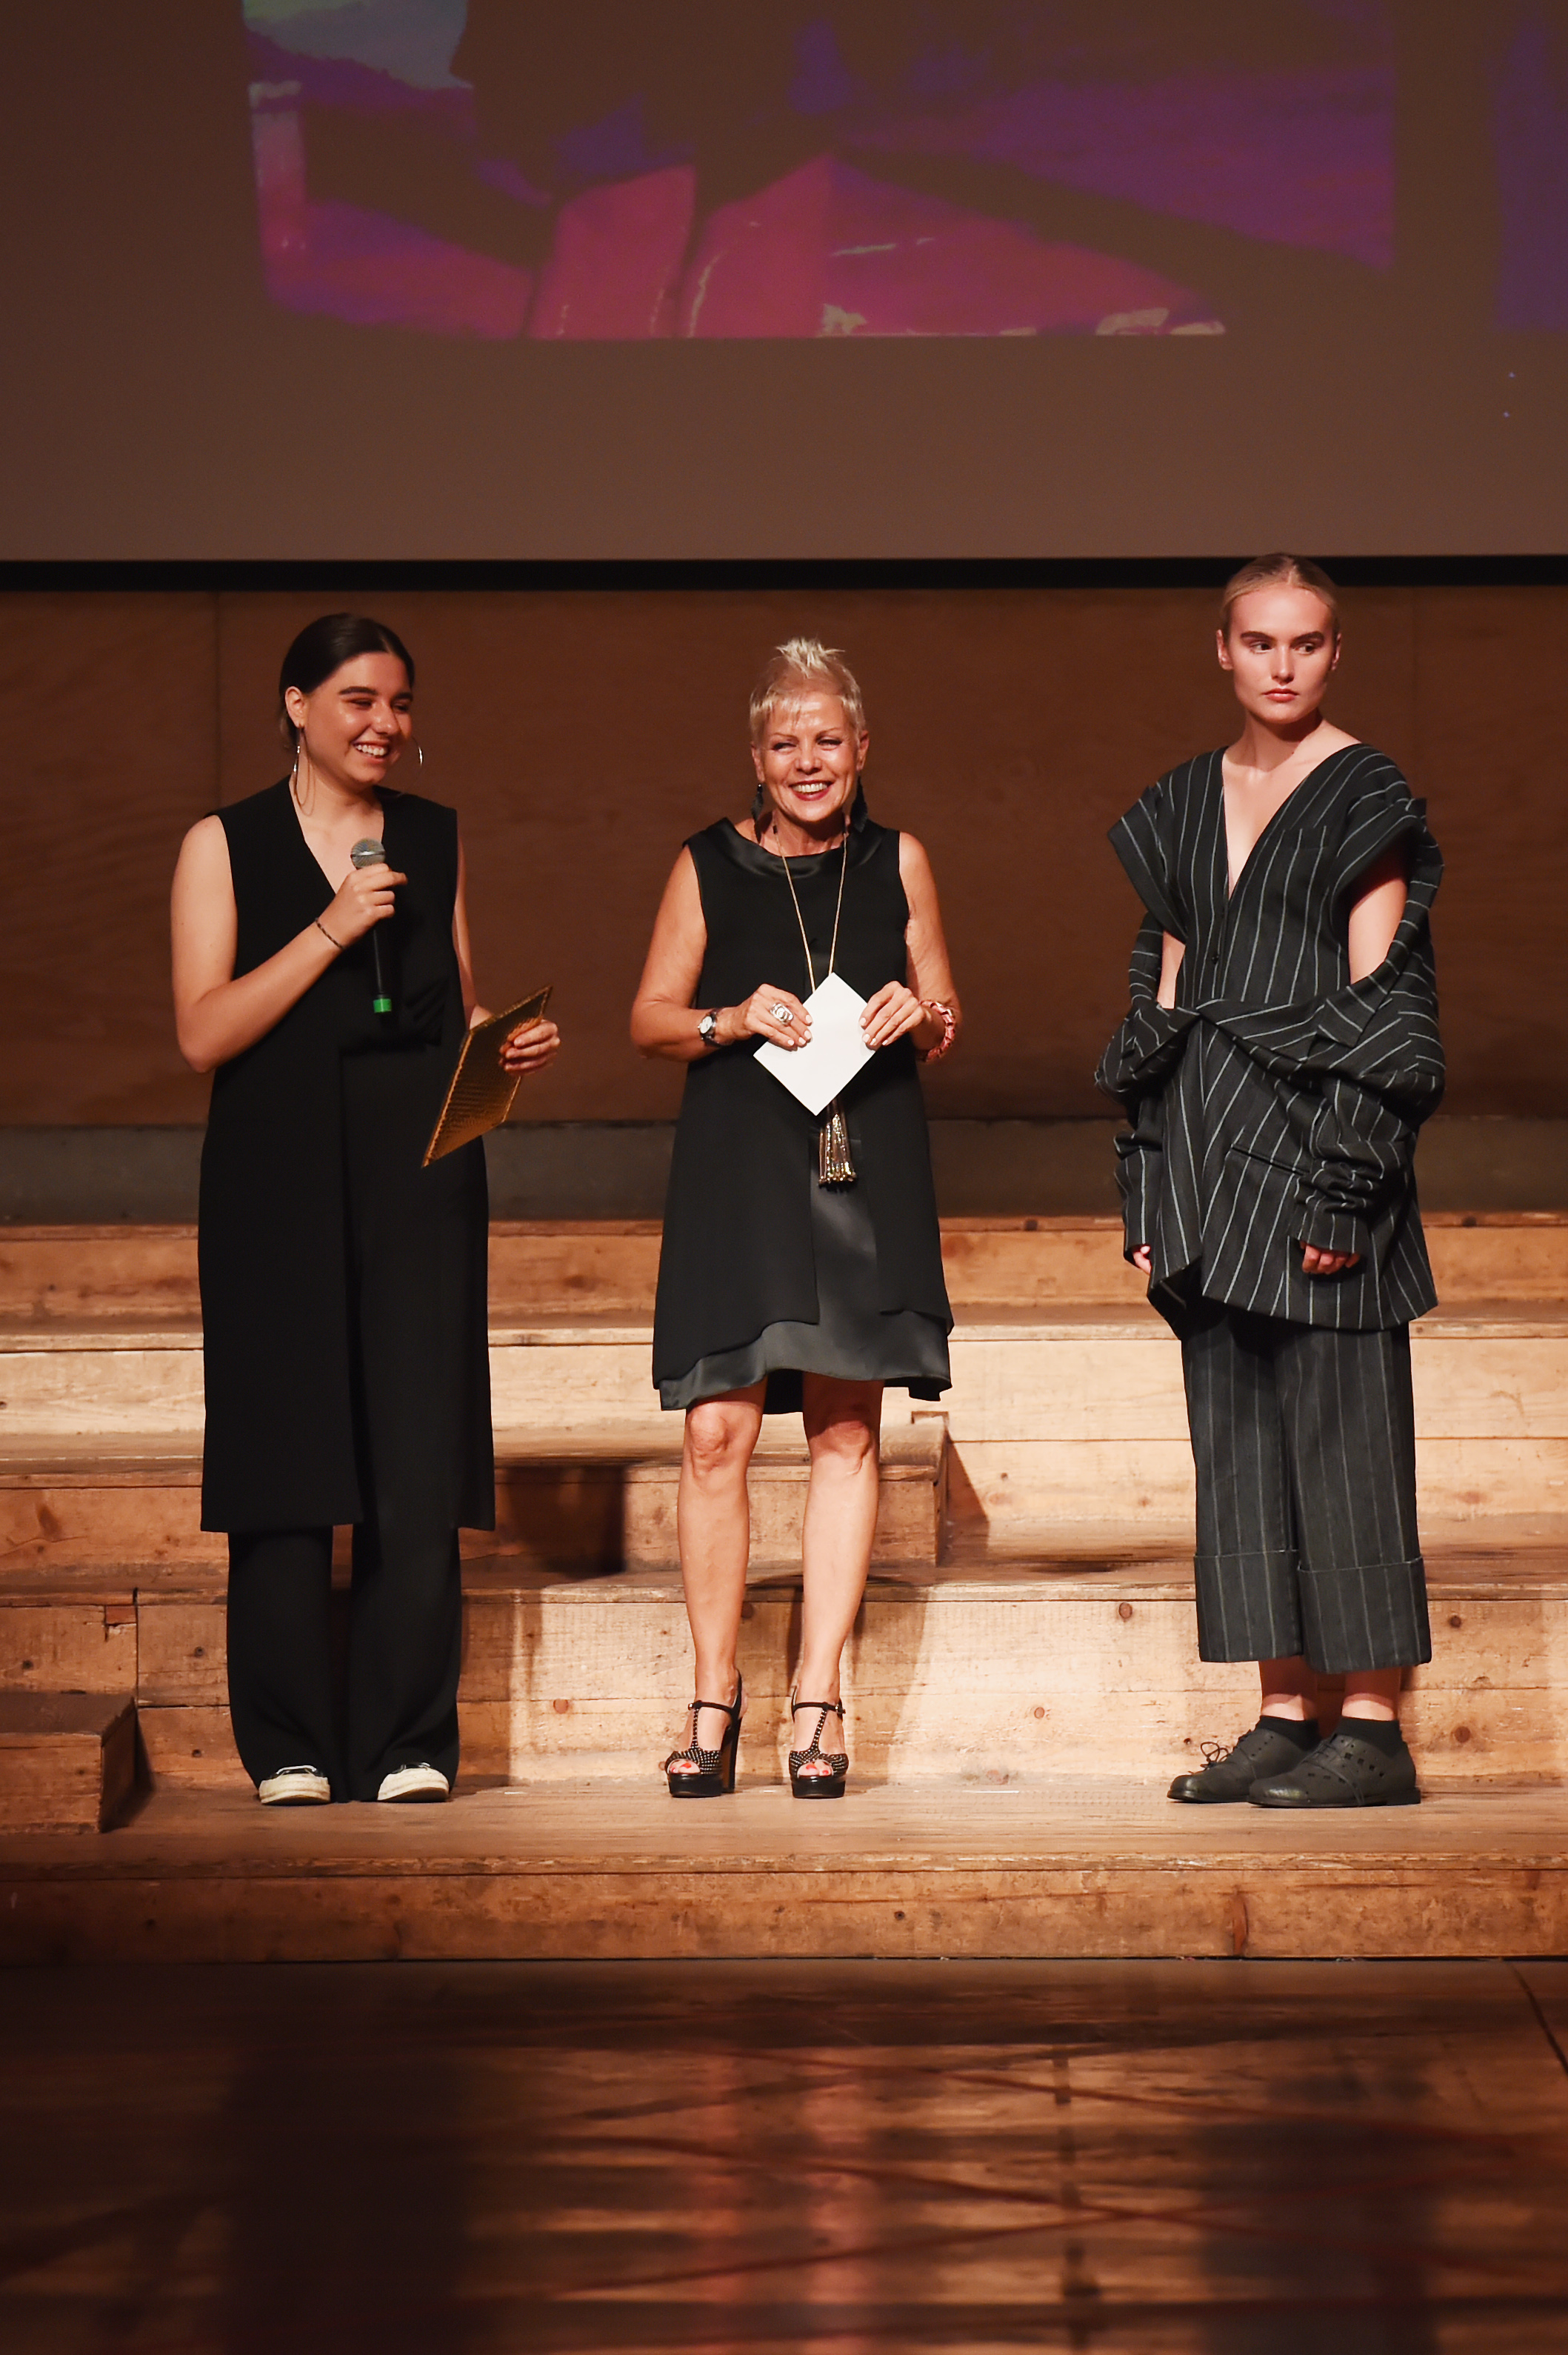 Winner of the Lectra Award, of the Denim Design Award, Maria Capellaro from NABA - Nuova Accademia d